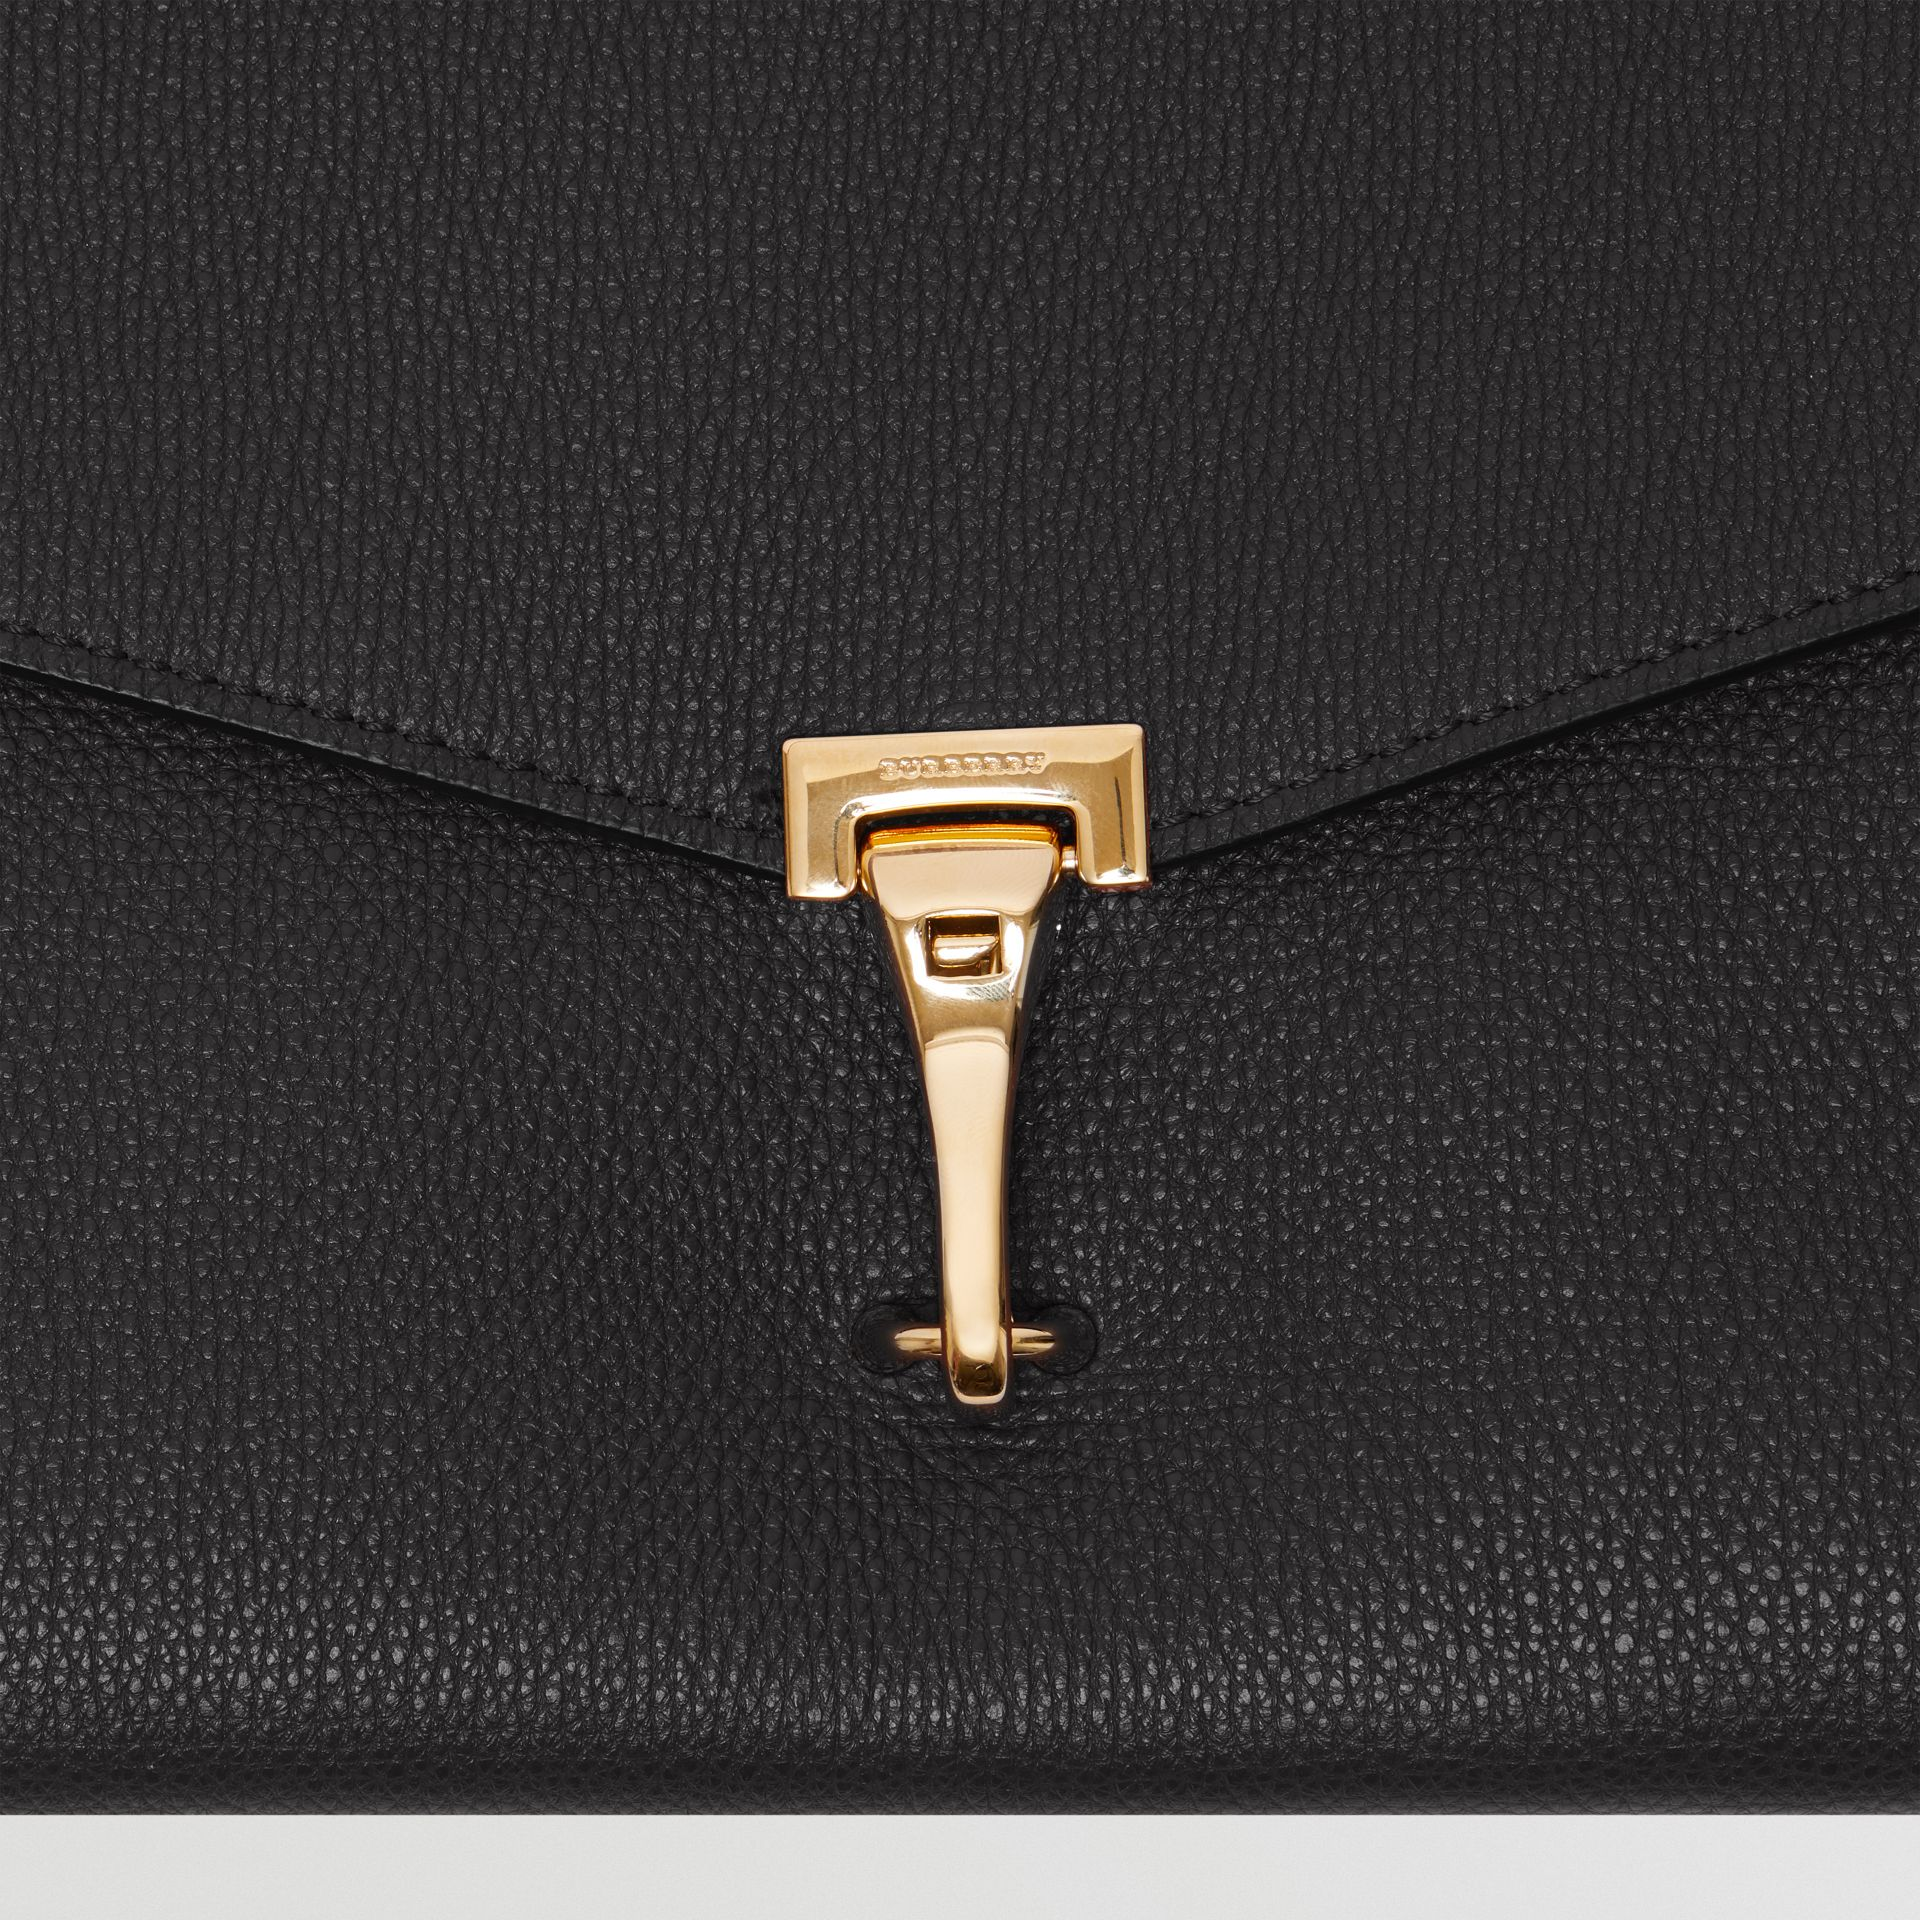 Small Leather Crossbody Bag in Black - Women | Burberry - gallery image 1